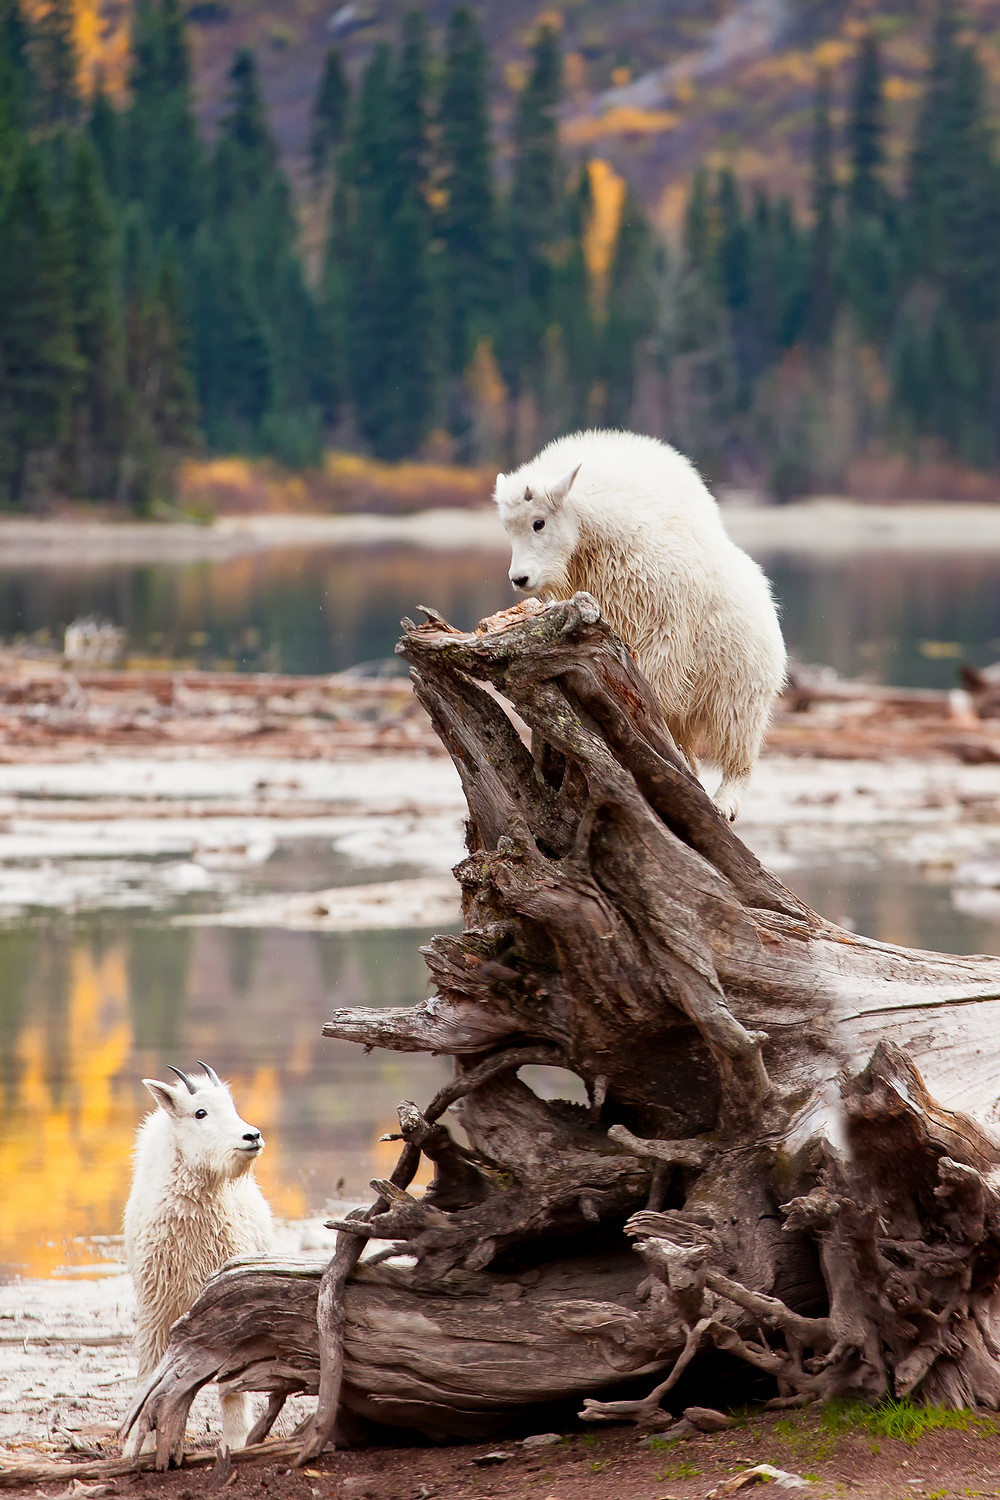 Young mountain goat kids playing on a fallen log at Avalanche Lake, Glacier National Park, Montana